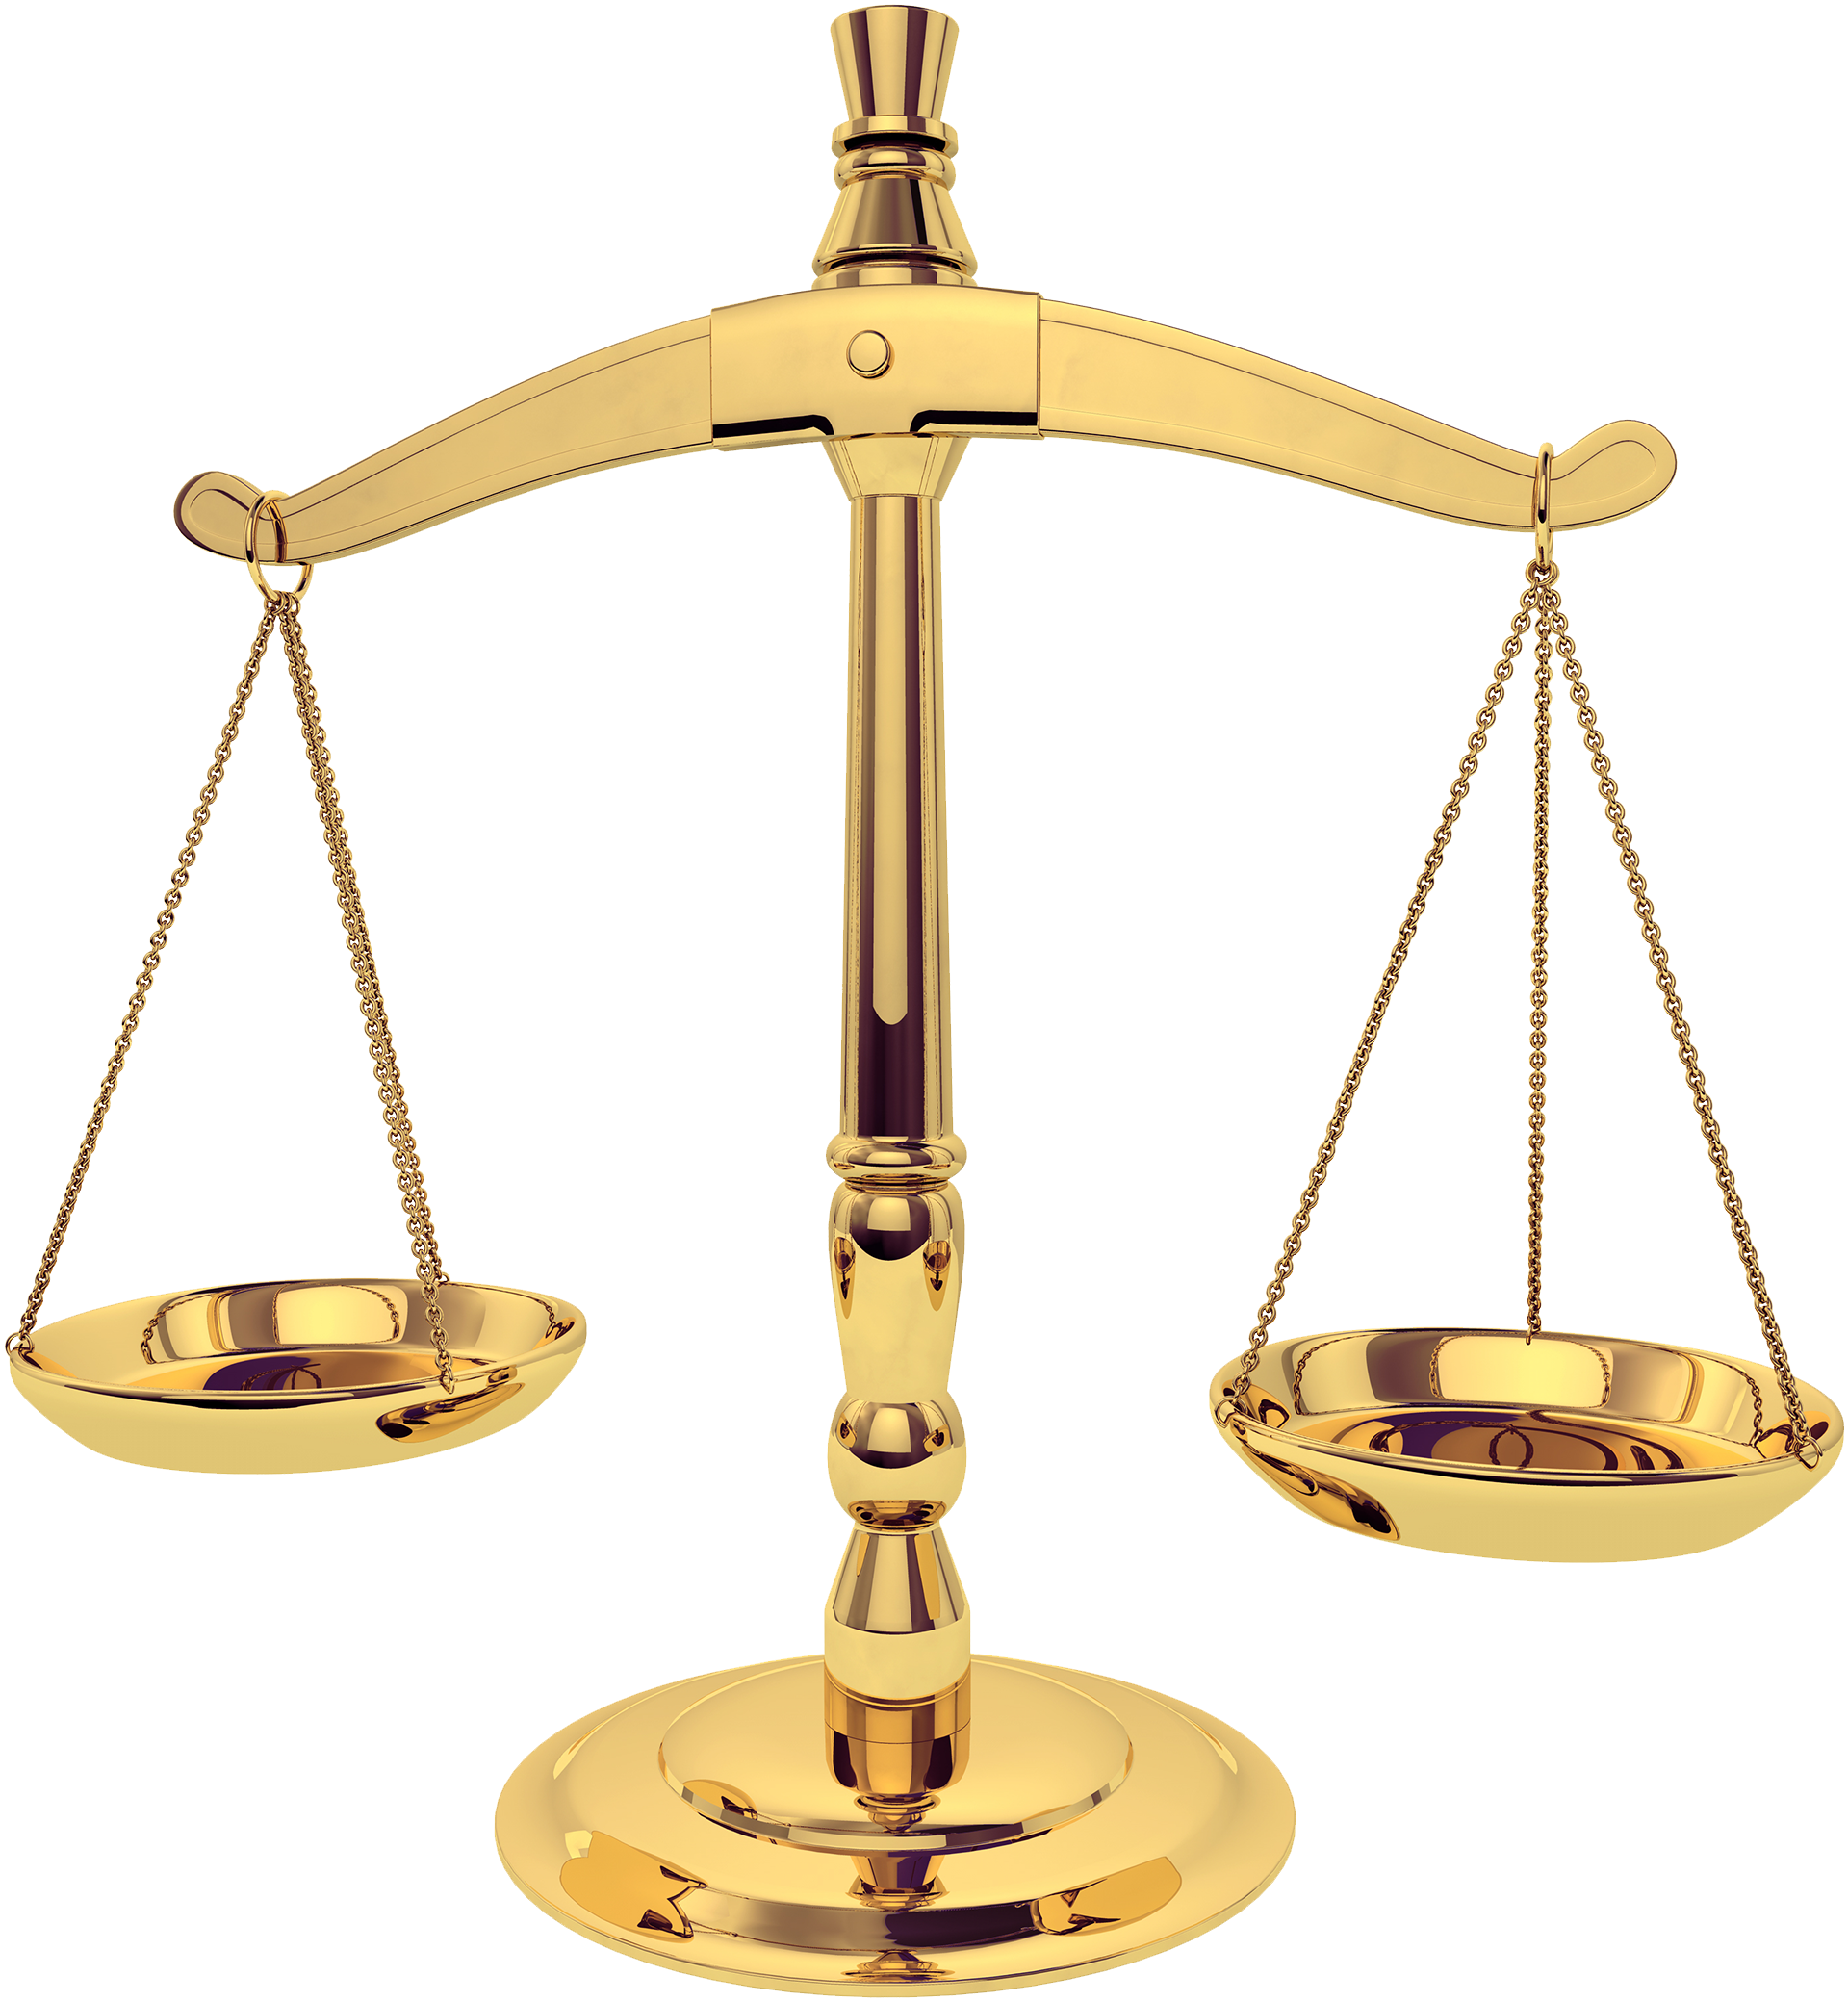 Golden Scales - JUSTICE (TRUTH FACTS EVIDENCE PROOF EQUALITY FAIRNESS)